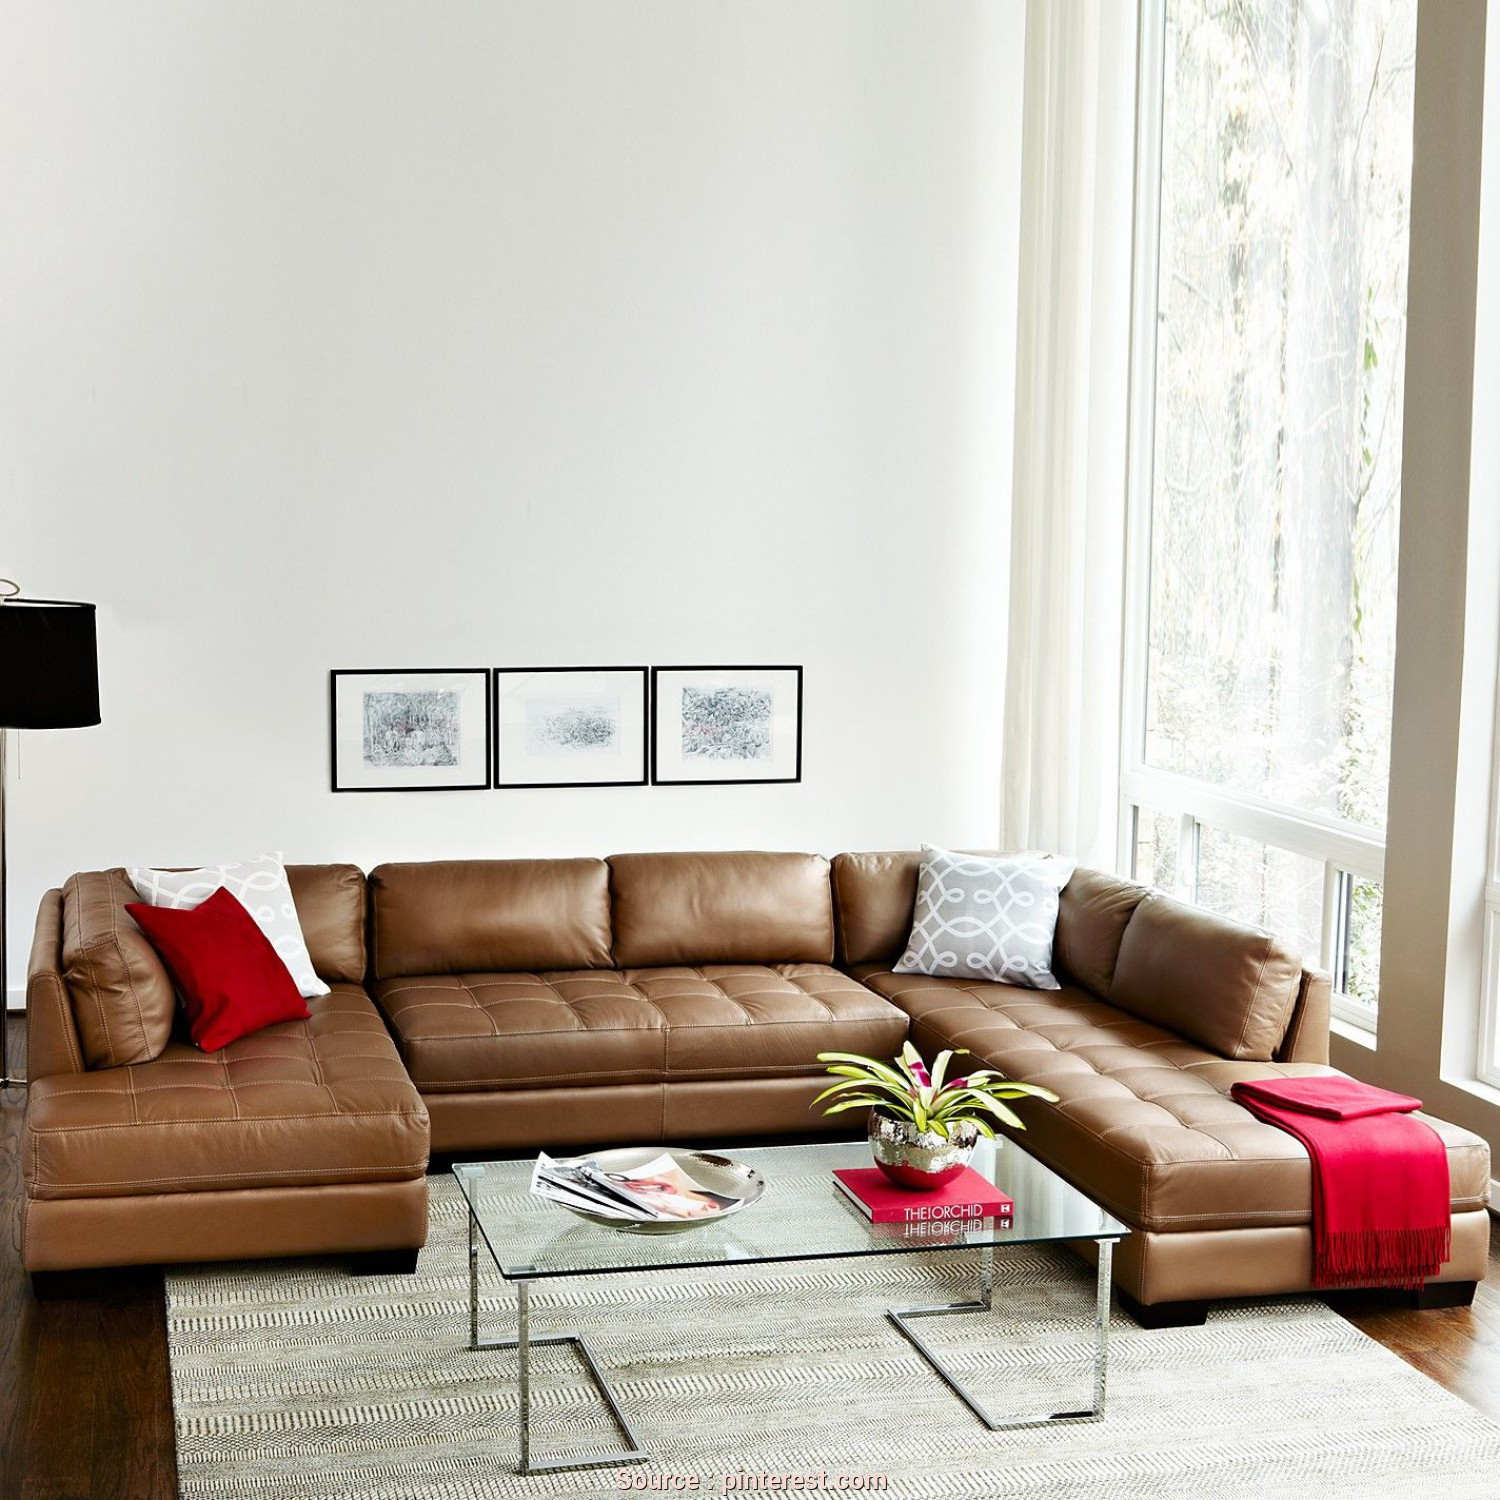 Divano Olga Chateau D'Ax, Affascinante Chateau D'Ax Becker Sofa Sectional, Rejected Stuff, Living